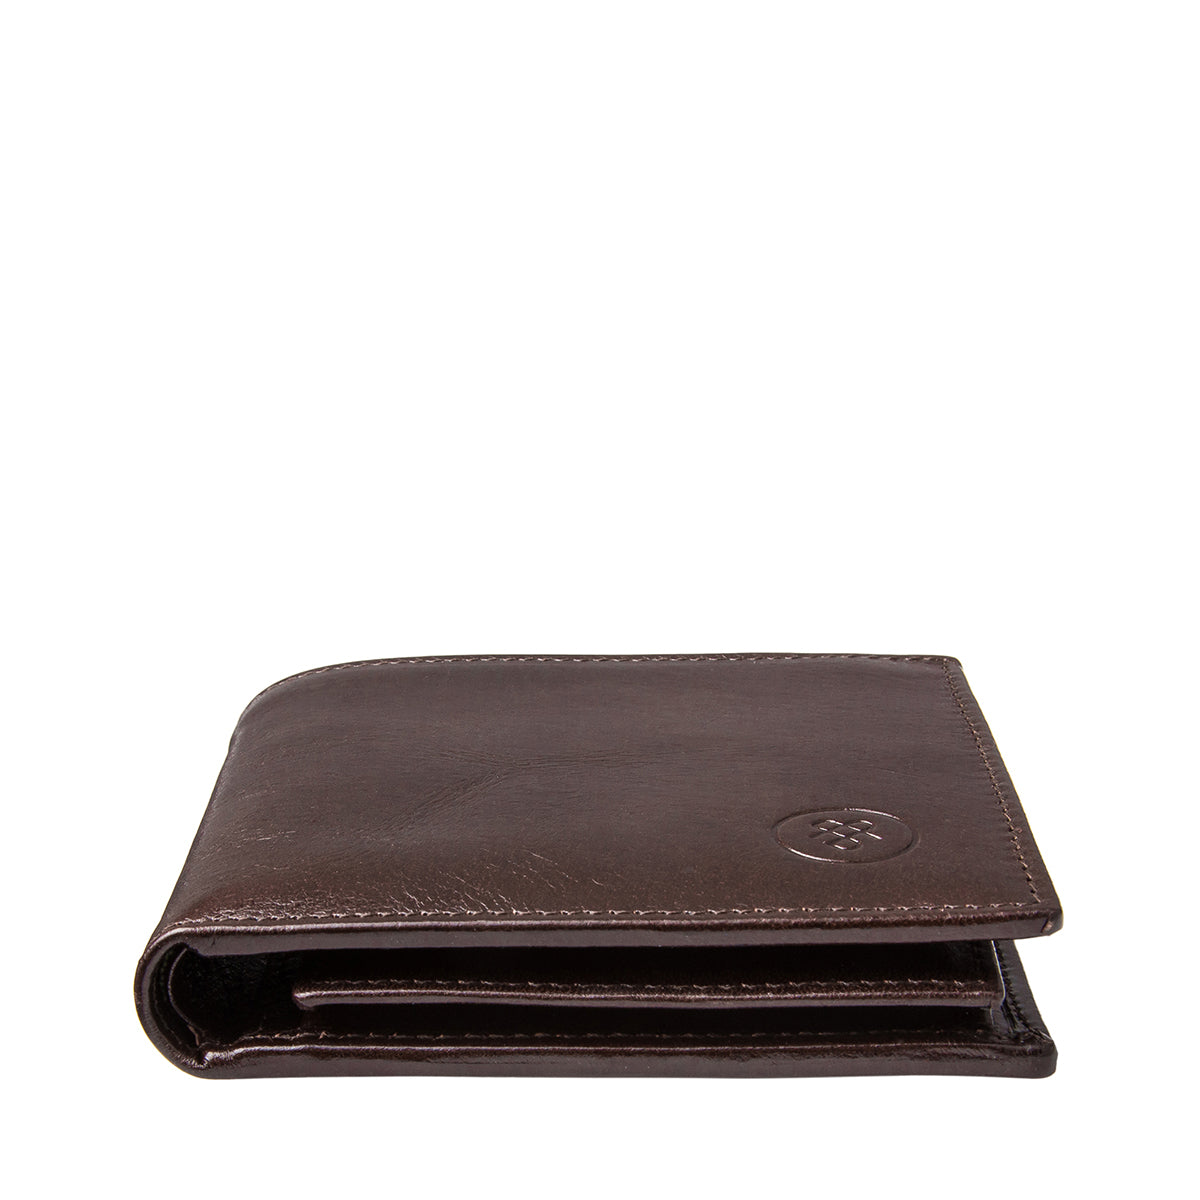 Image 6 of the 'Ticciano' Brown Veg-Tanned Leather Wallet with Coin Pocket